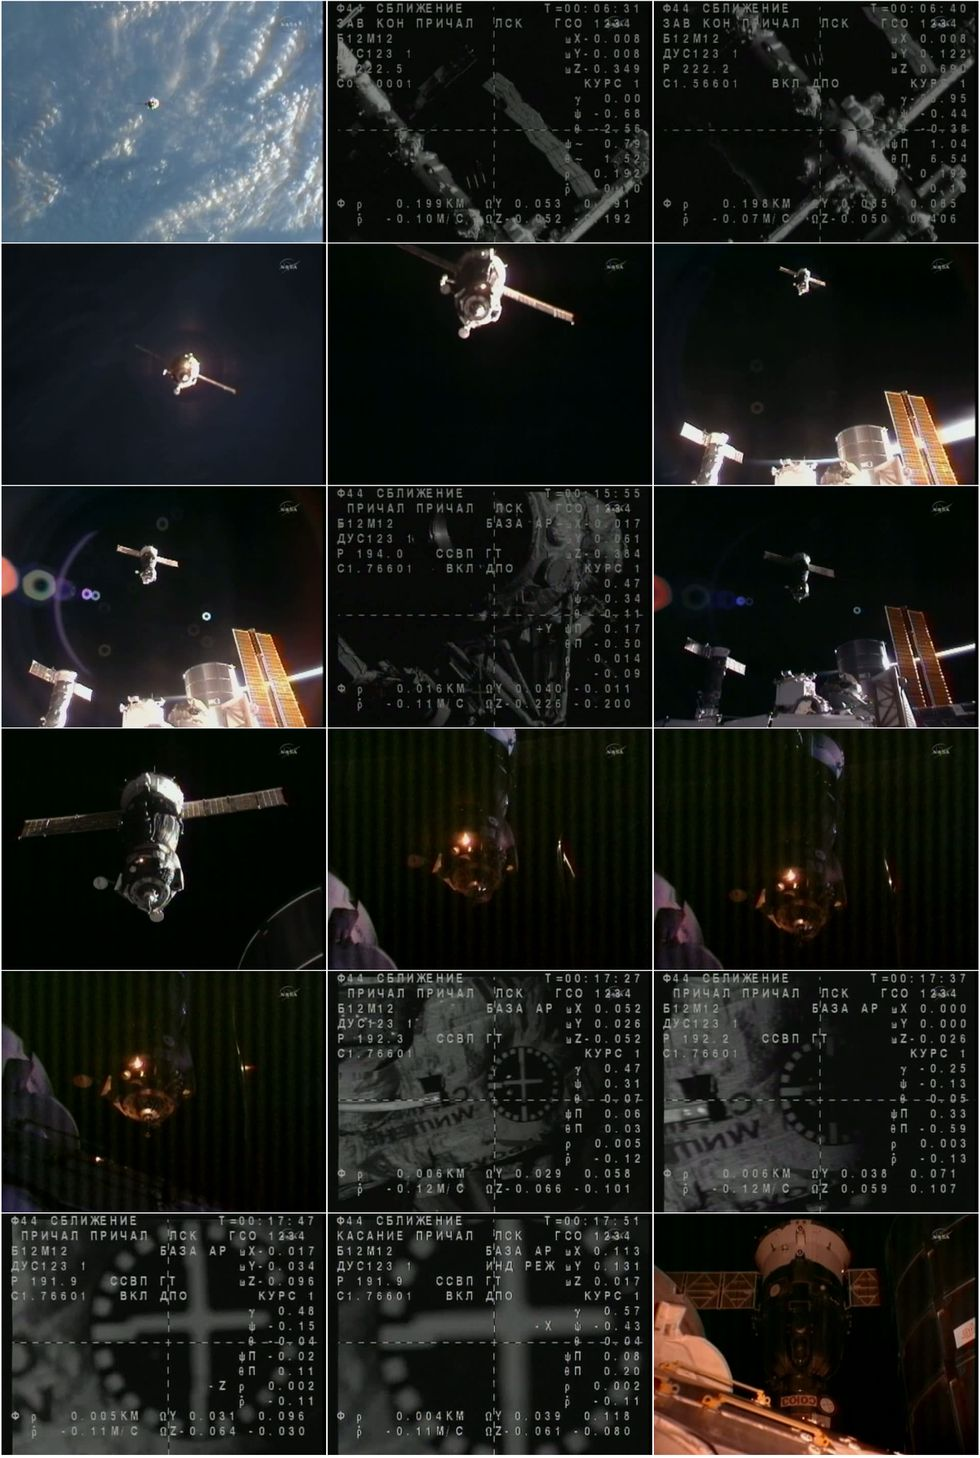 Expedition 28 Stma0210